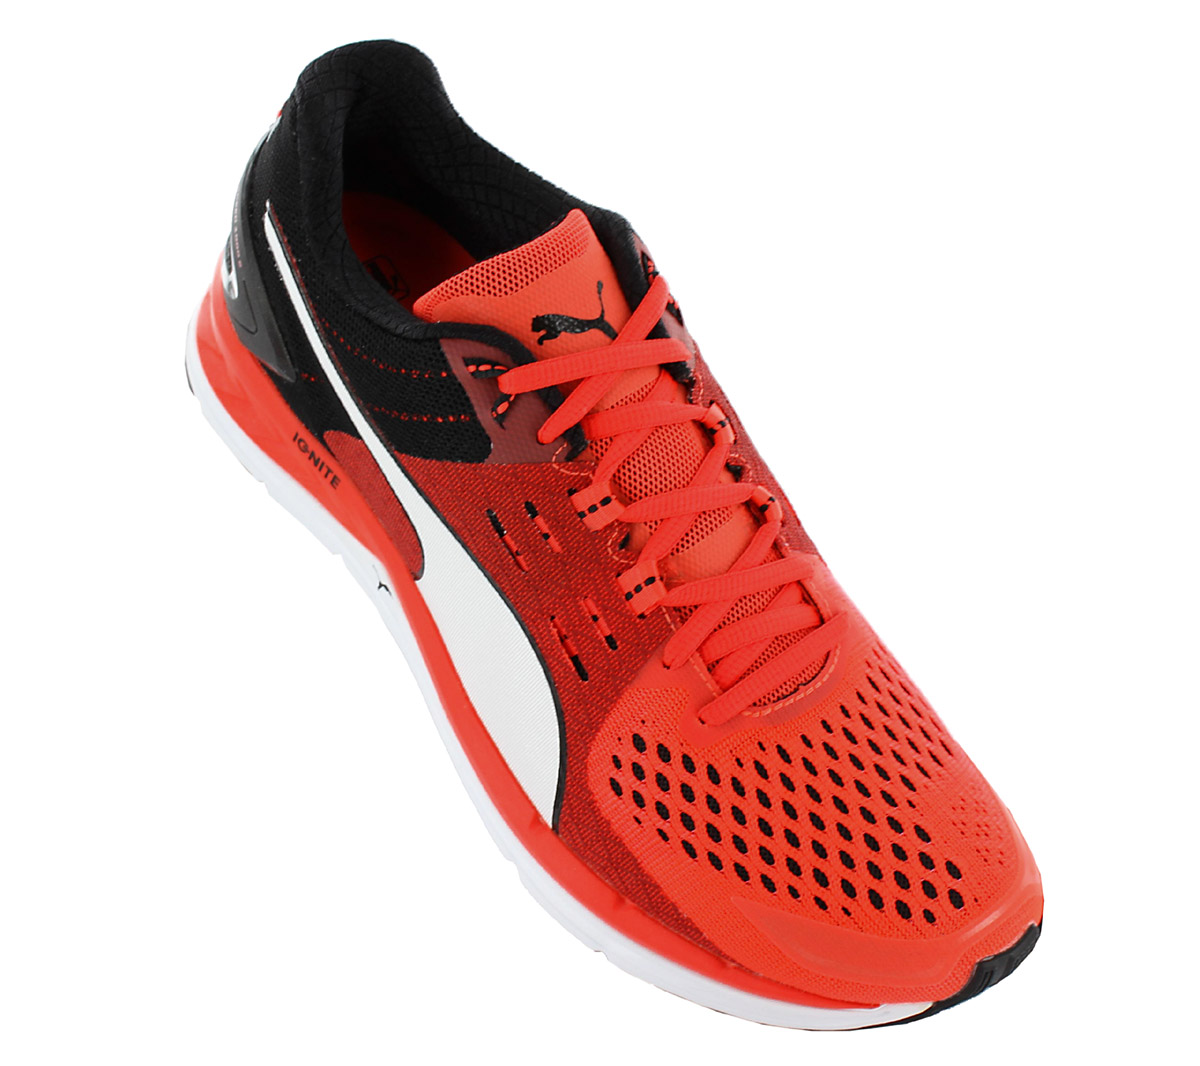 30842d4c649 Puma Speed 1000 S Ignite Shoes Men s Running Shoes Red Running ...